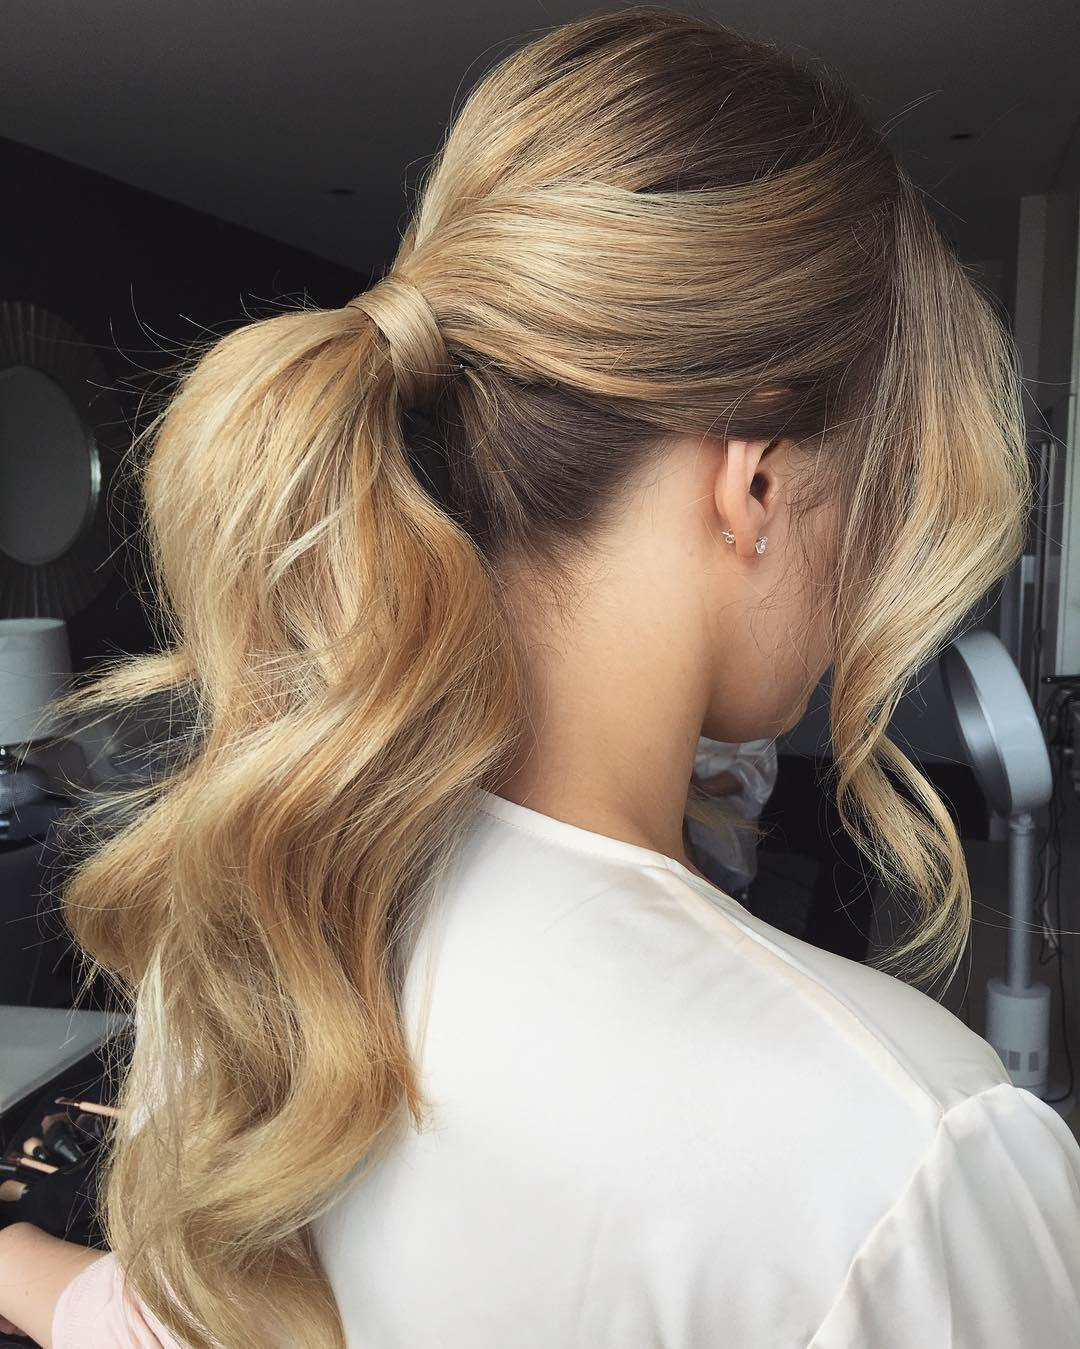 Best ideas about Prom Hairstyles Ponytail . Save or Pin 40 Irresistible Hairstyles for Brides and Bridesmaids Now.